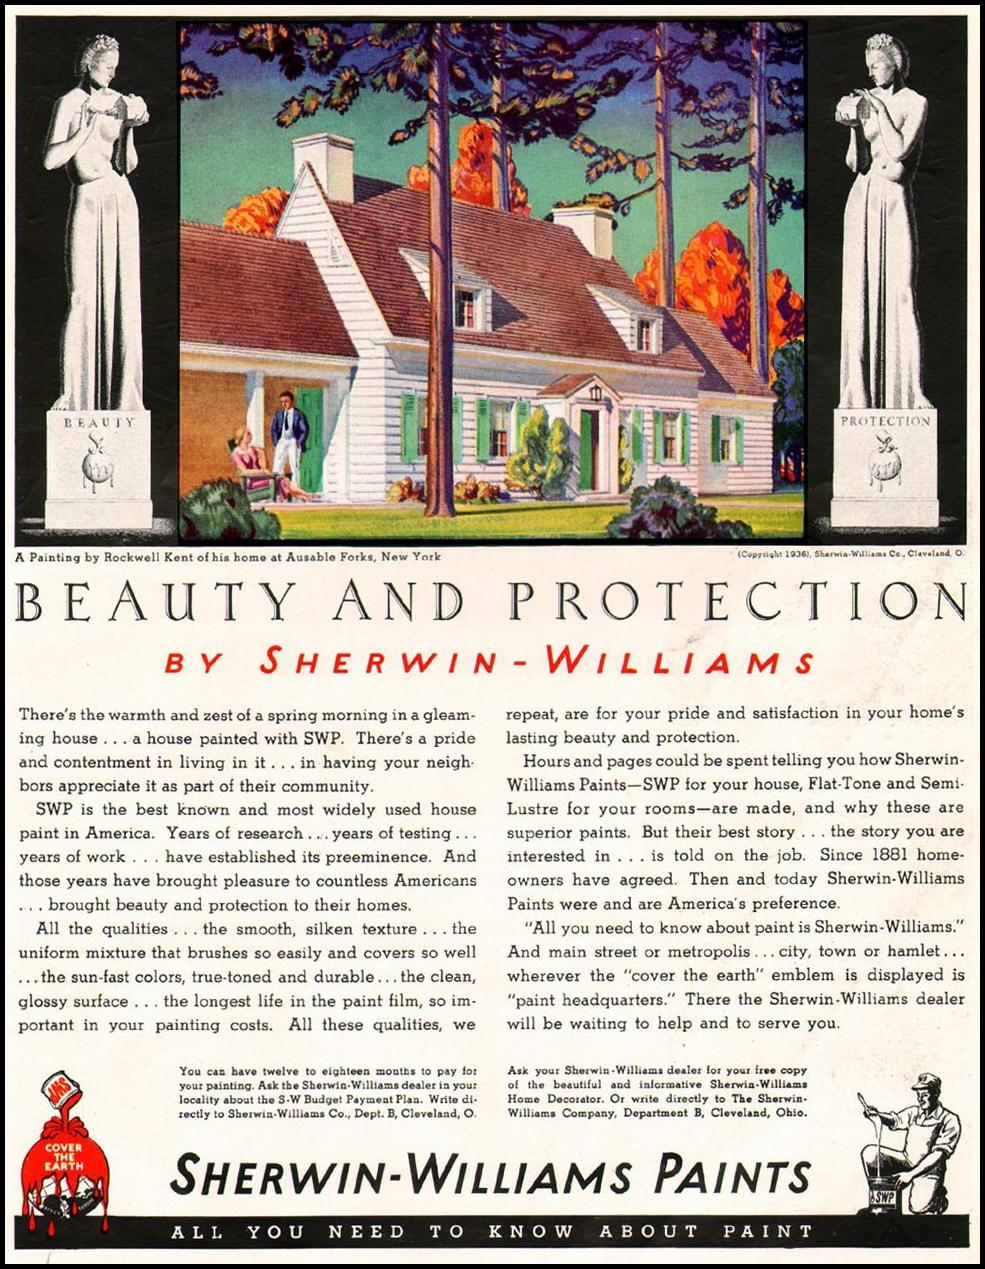 SHERWIN-WILLIAMS PAINTS BETTER HOMES AND GARDENS 05/01/1936 p. 91